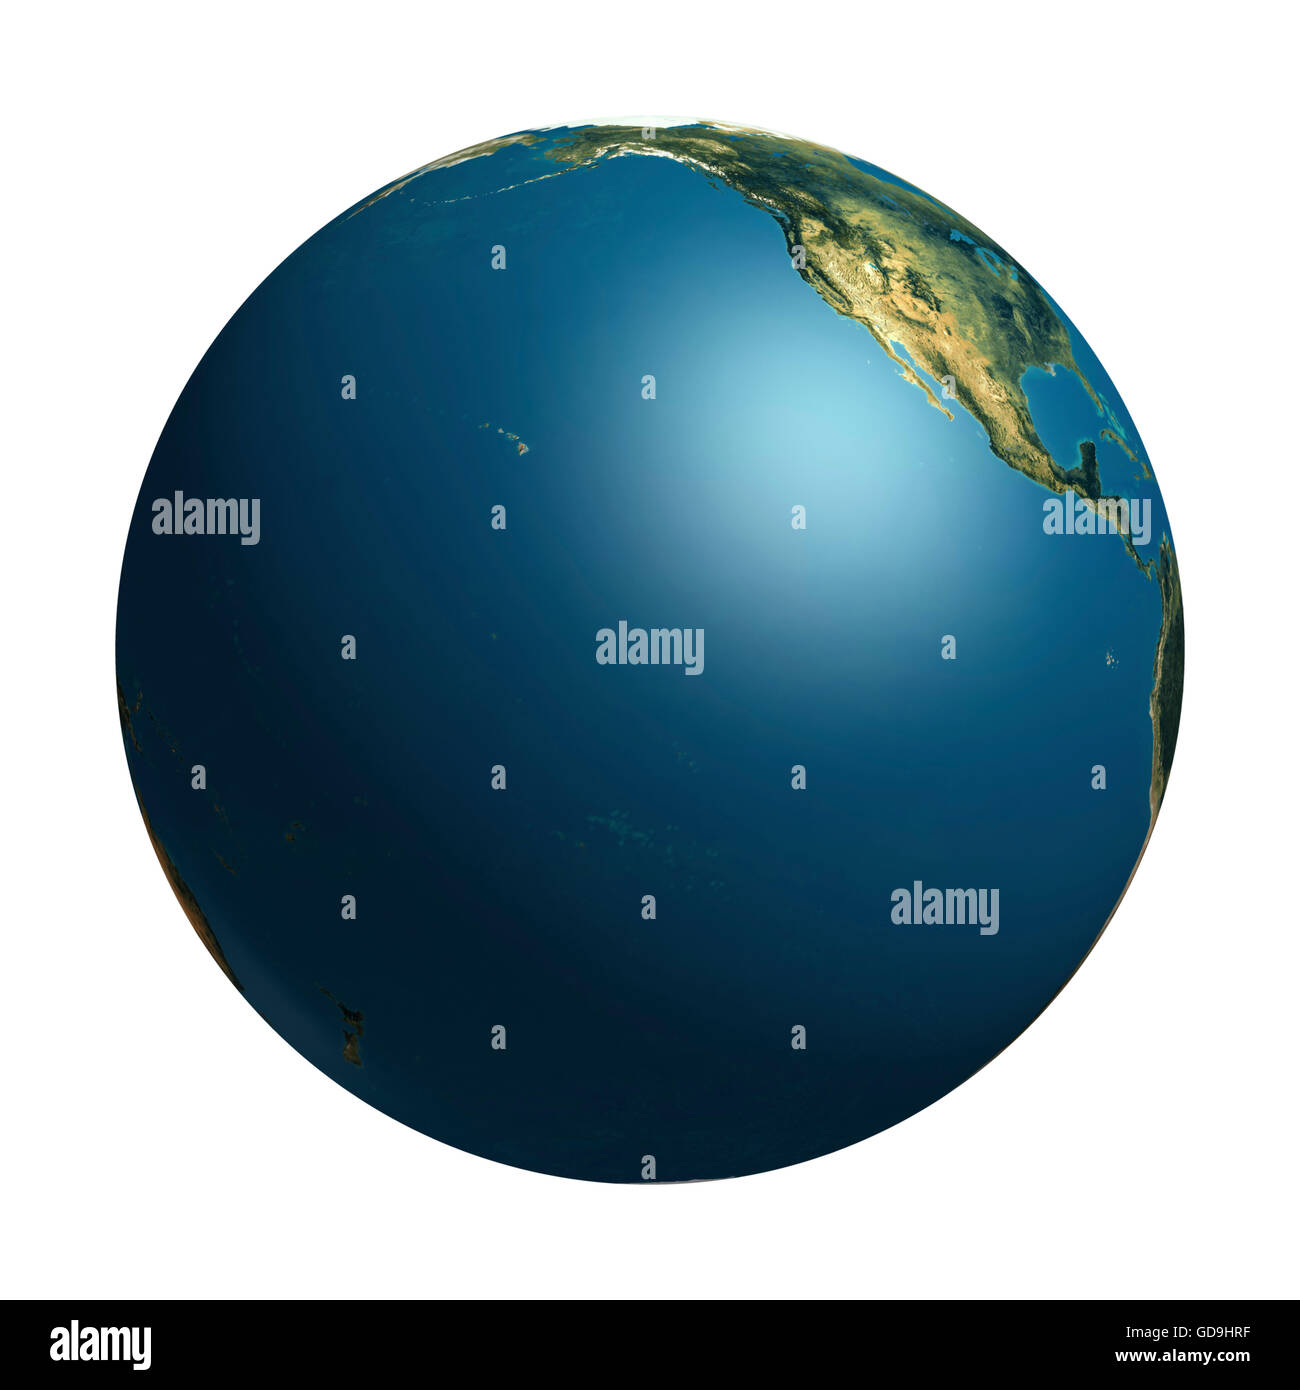 View of the Earth globe from space showing the Pacific Ocean and a part of the North American continent, 3D graphics - Stock Image